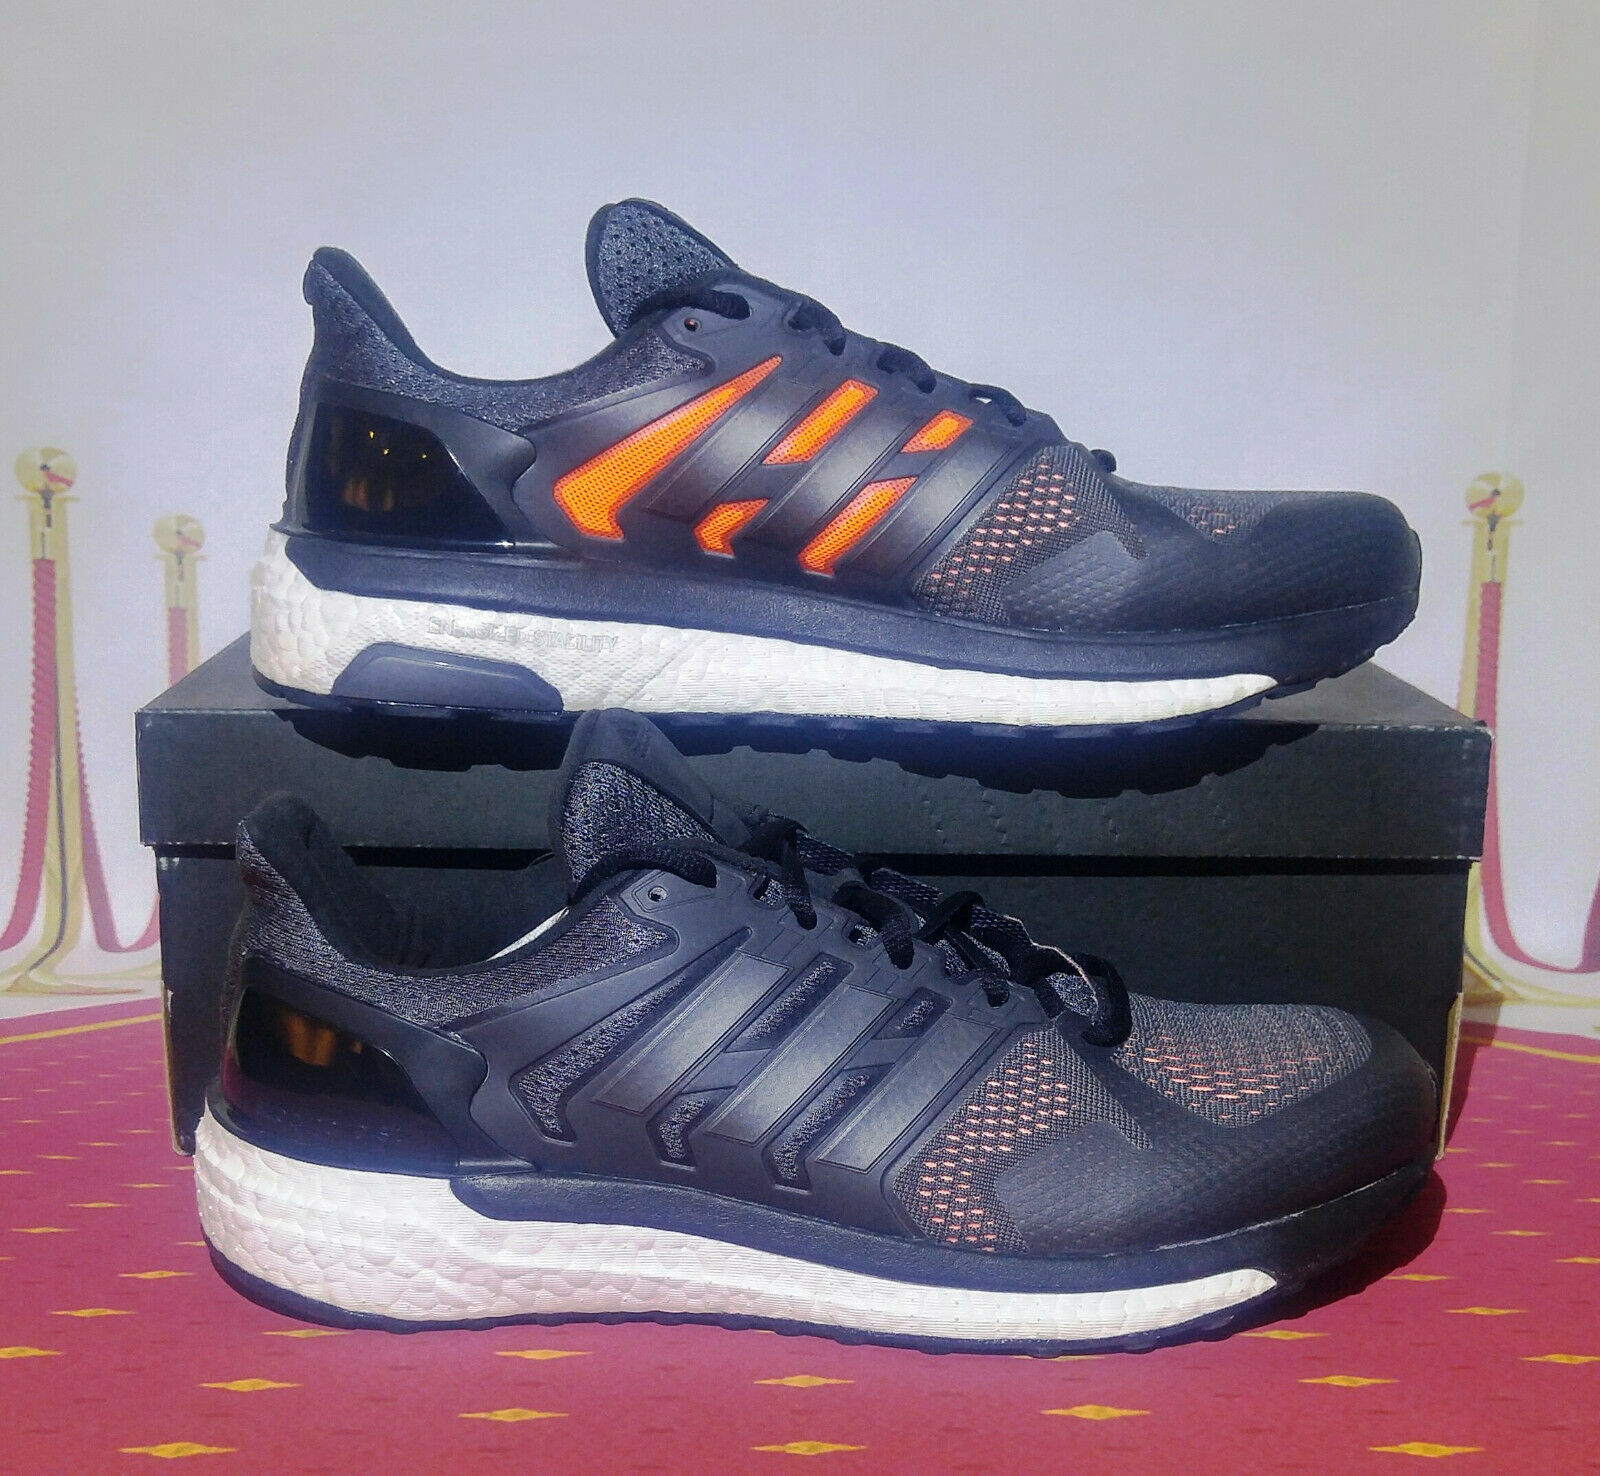 fb4fb0a7c05f1 Adidas Men s Men s Men s Supernova St CG3063 Running Men s shoes size 10  NEW 74f8f8